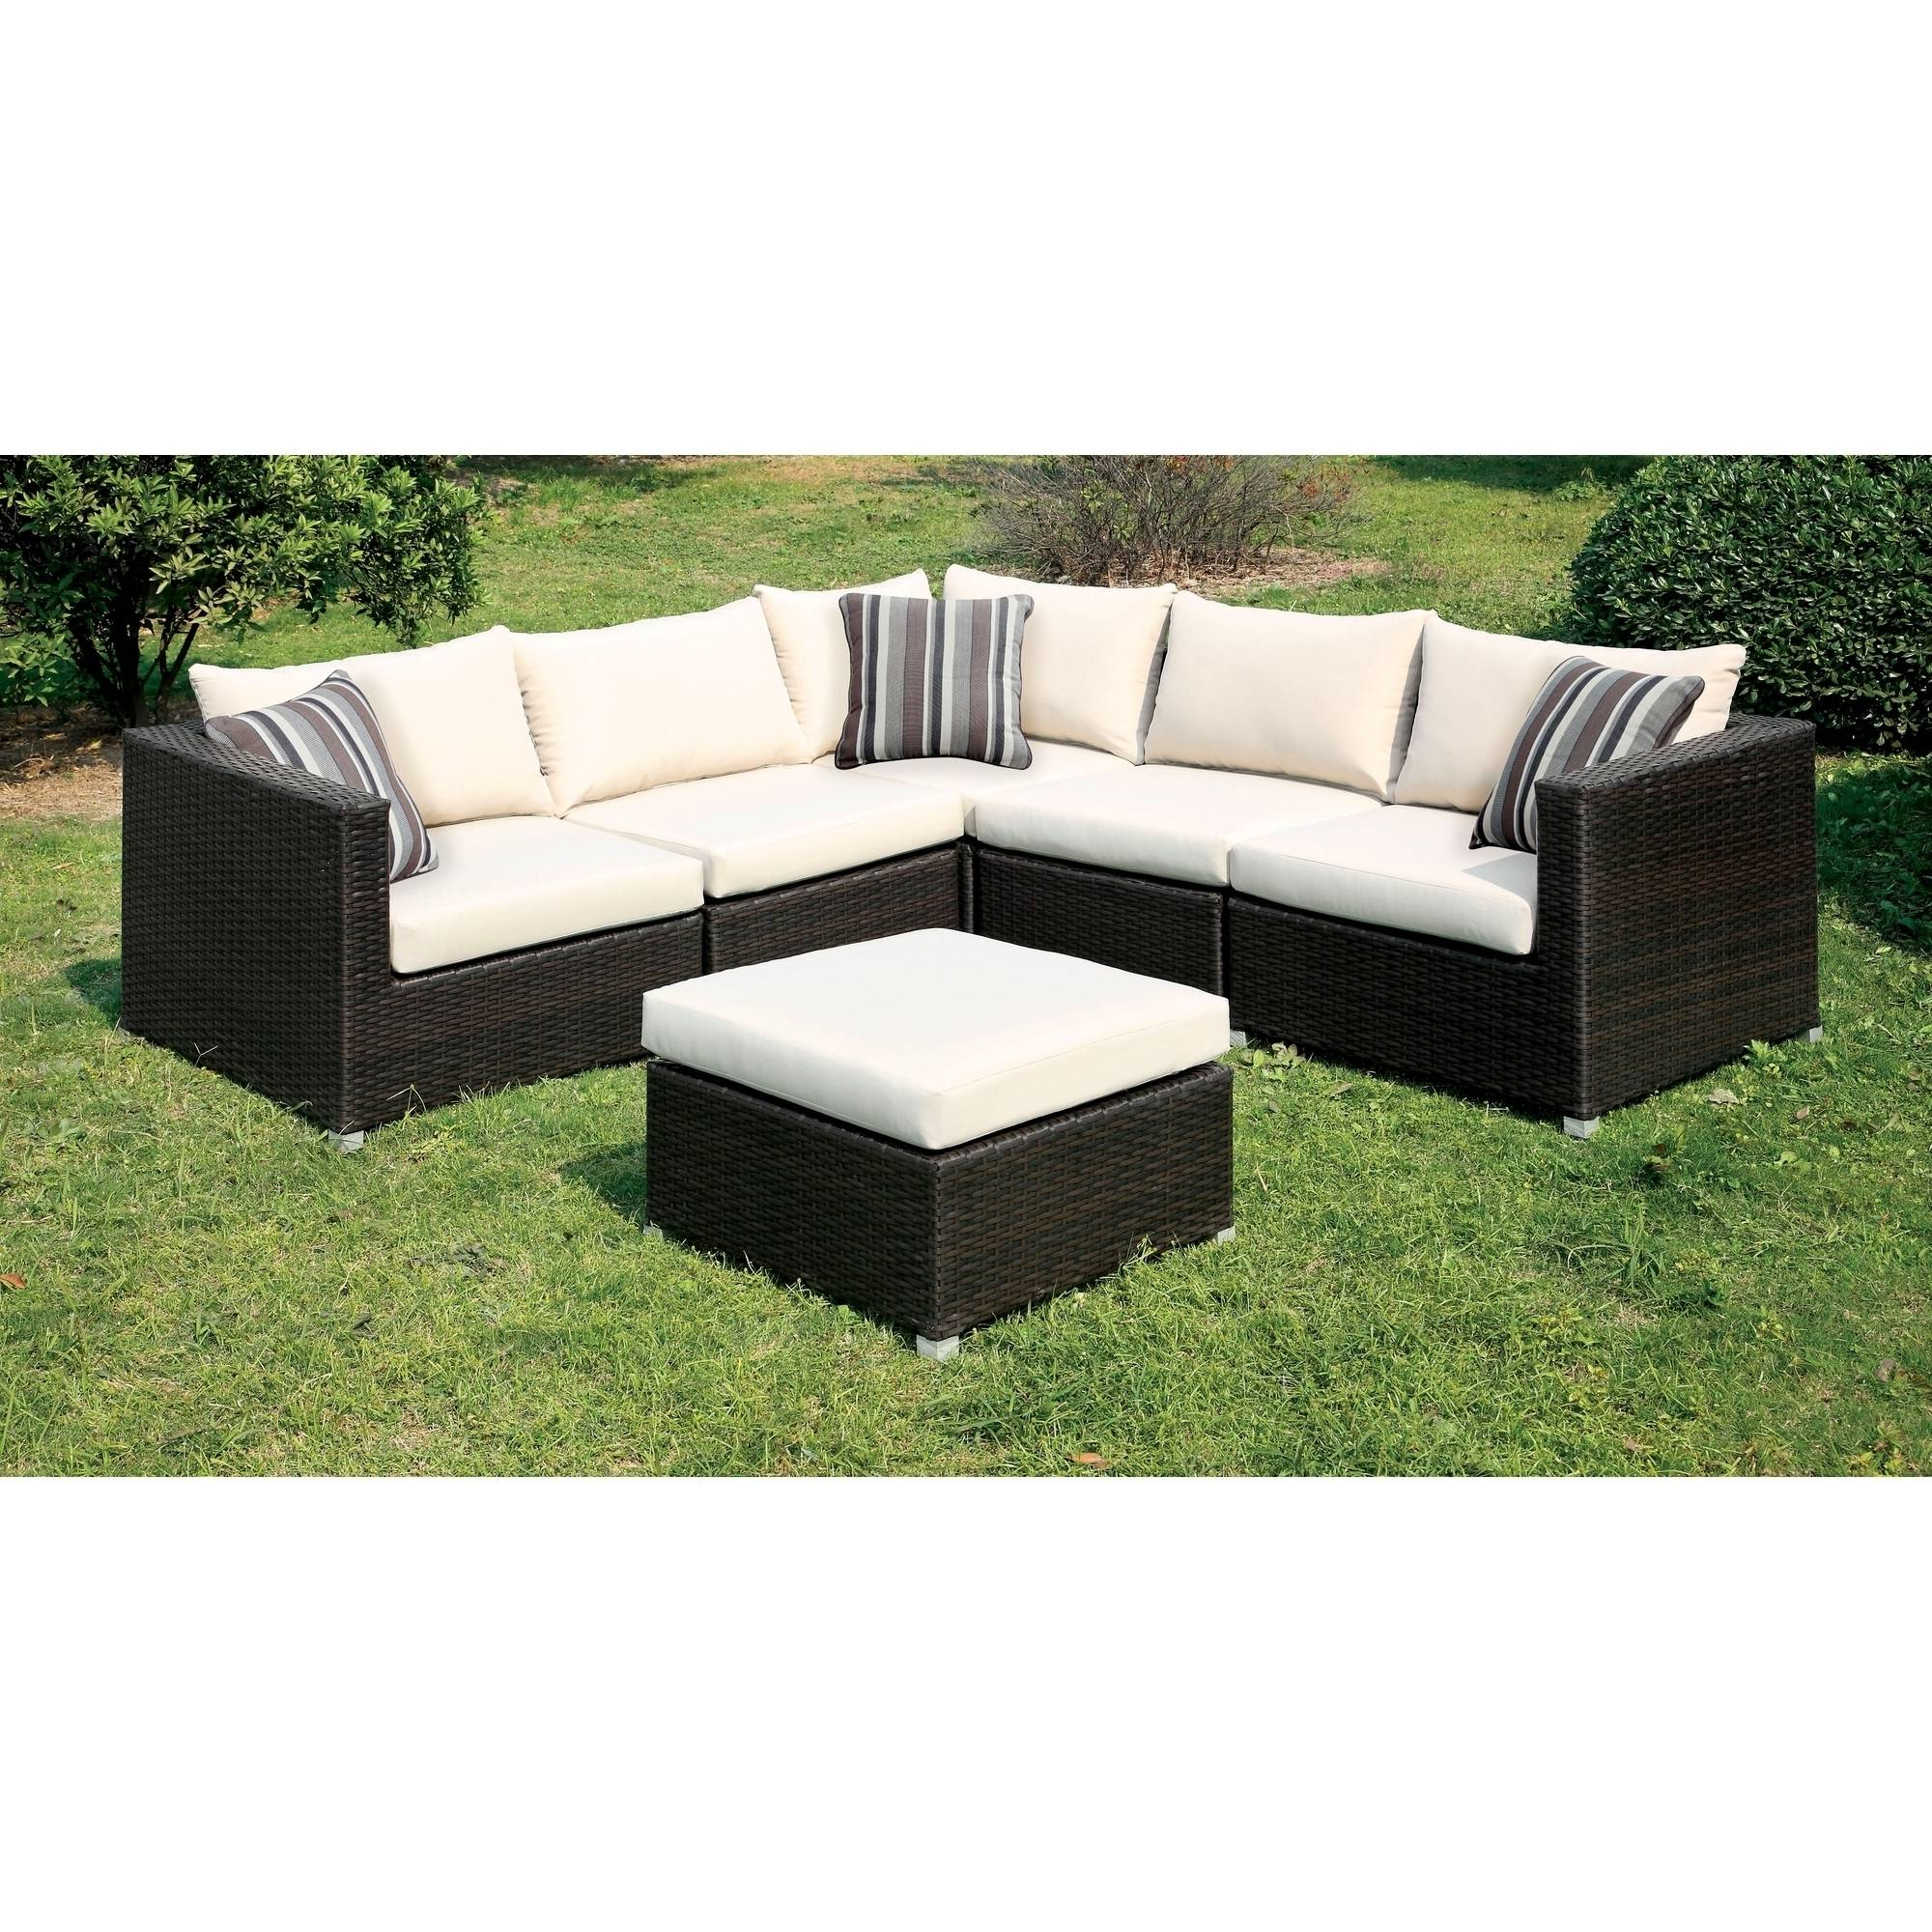 Favorite Baca Patio Sofas With Cushions With Regard To Furniture Of America Baca Patio Sectional And Ottoman Set, Ivory (View 12 of 25)